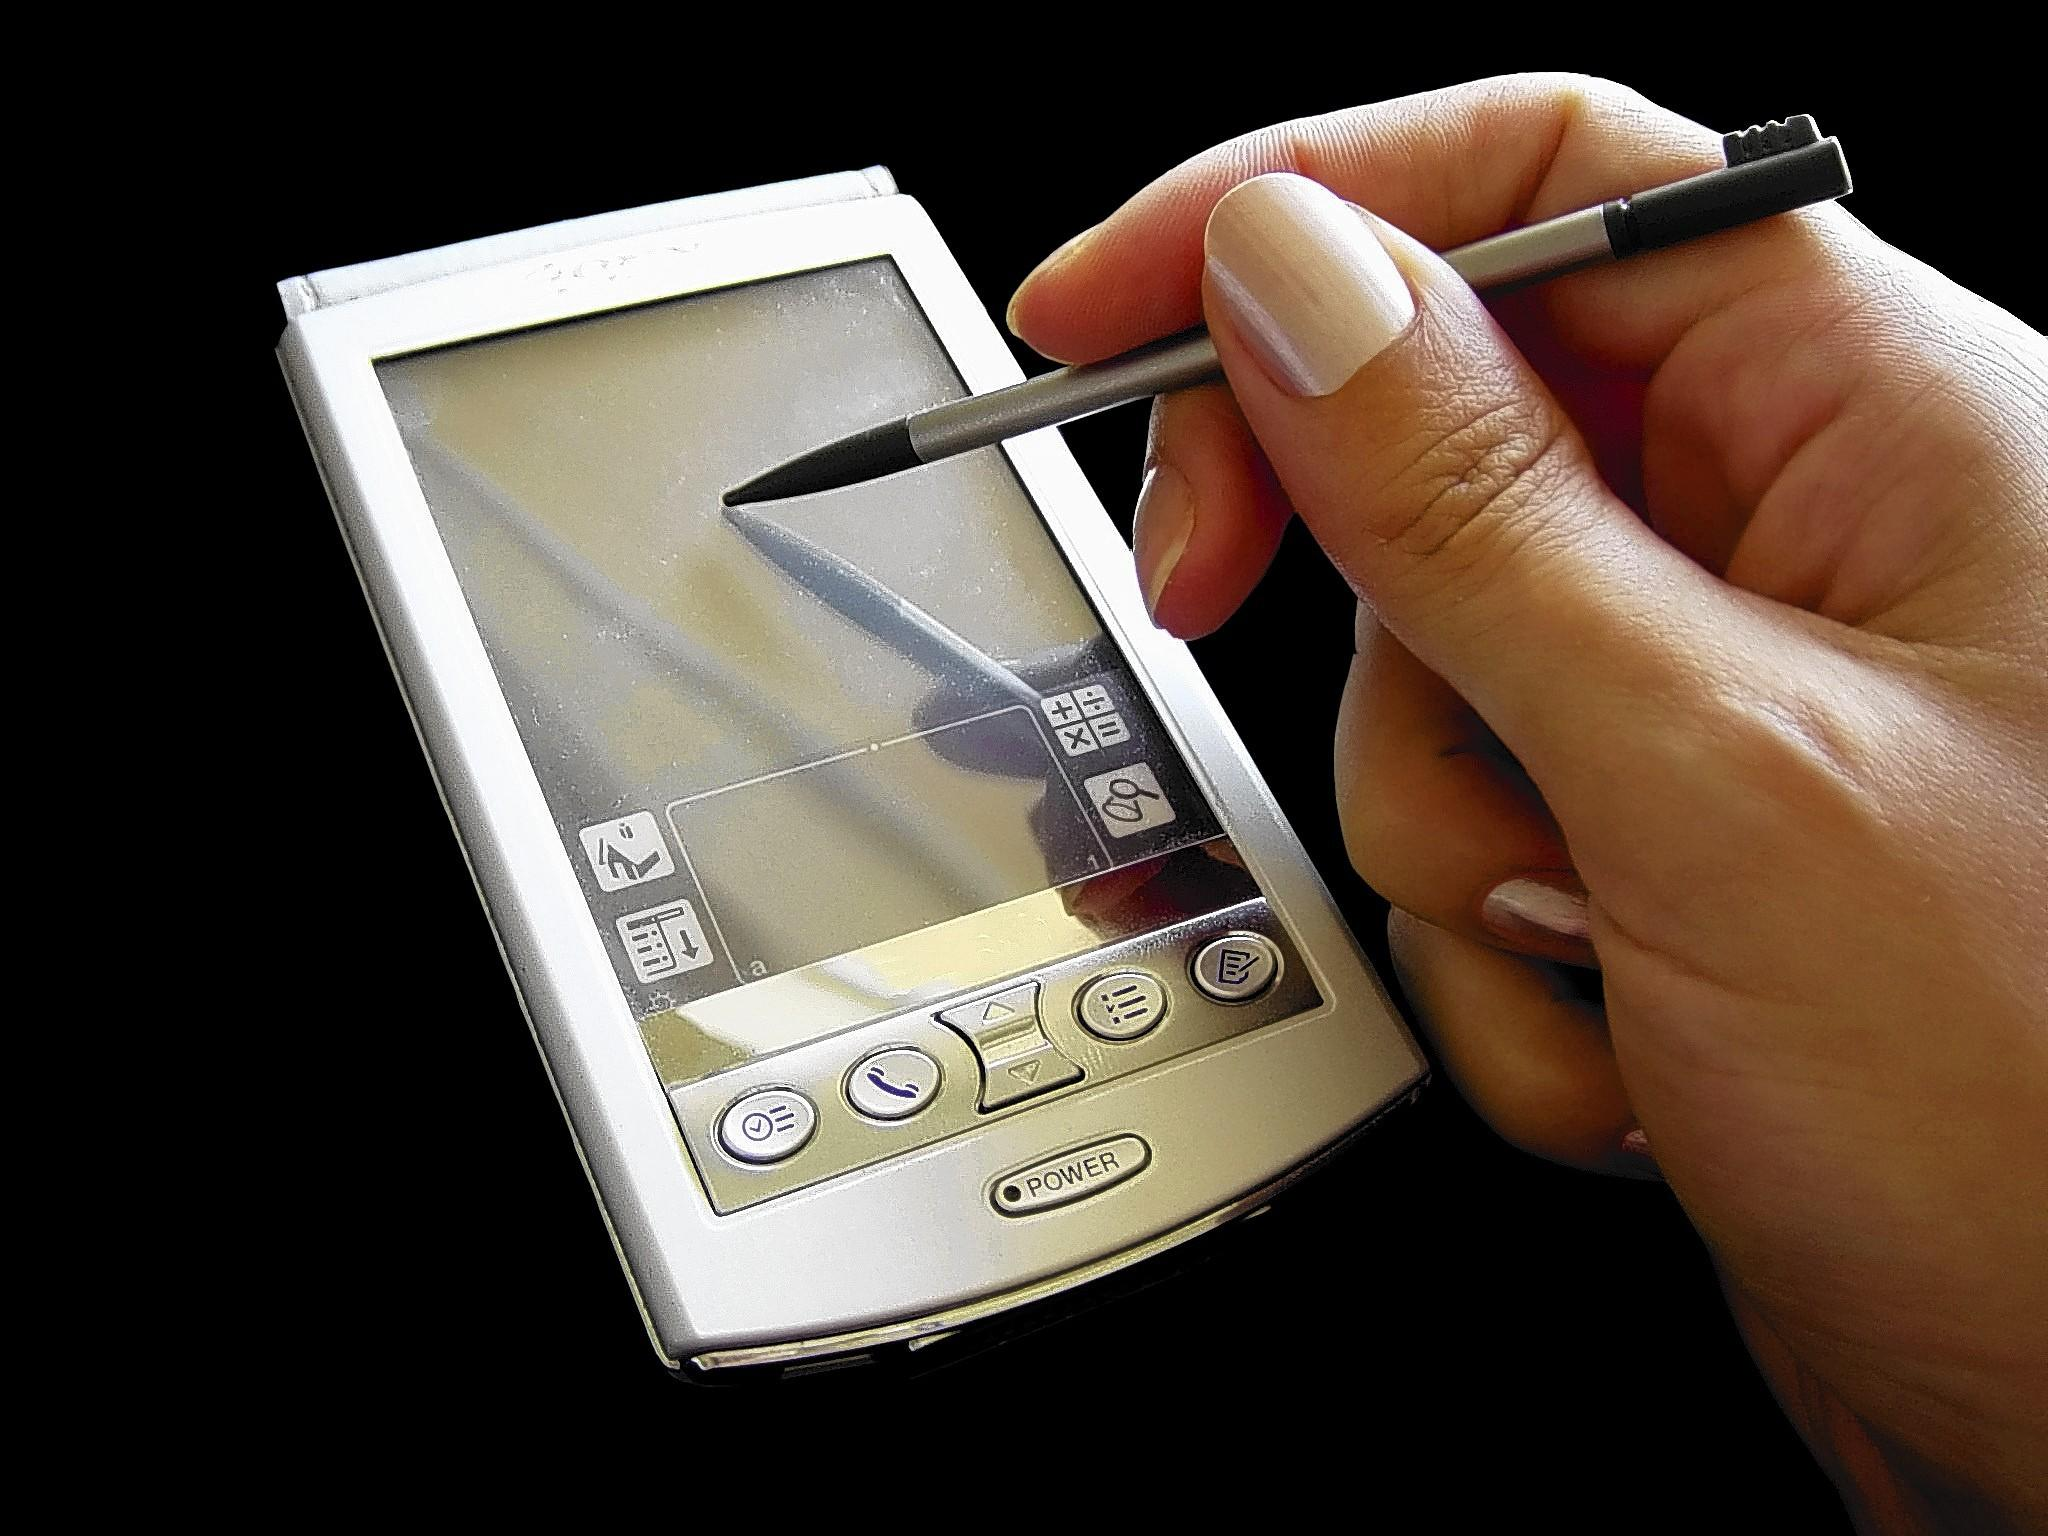 1990s-era personal digital assistants like the PalmPilot required a stylus. They synced contacts and had calendars, calculator, expense log, games and more.